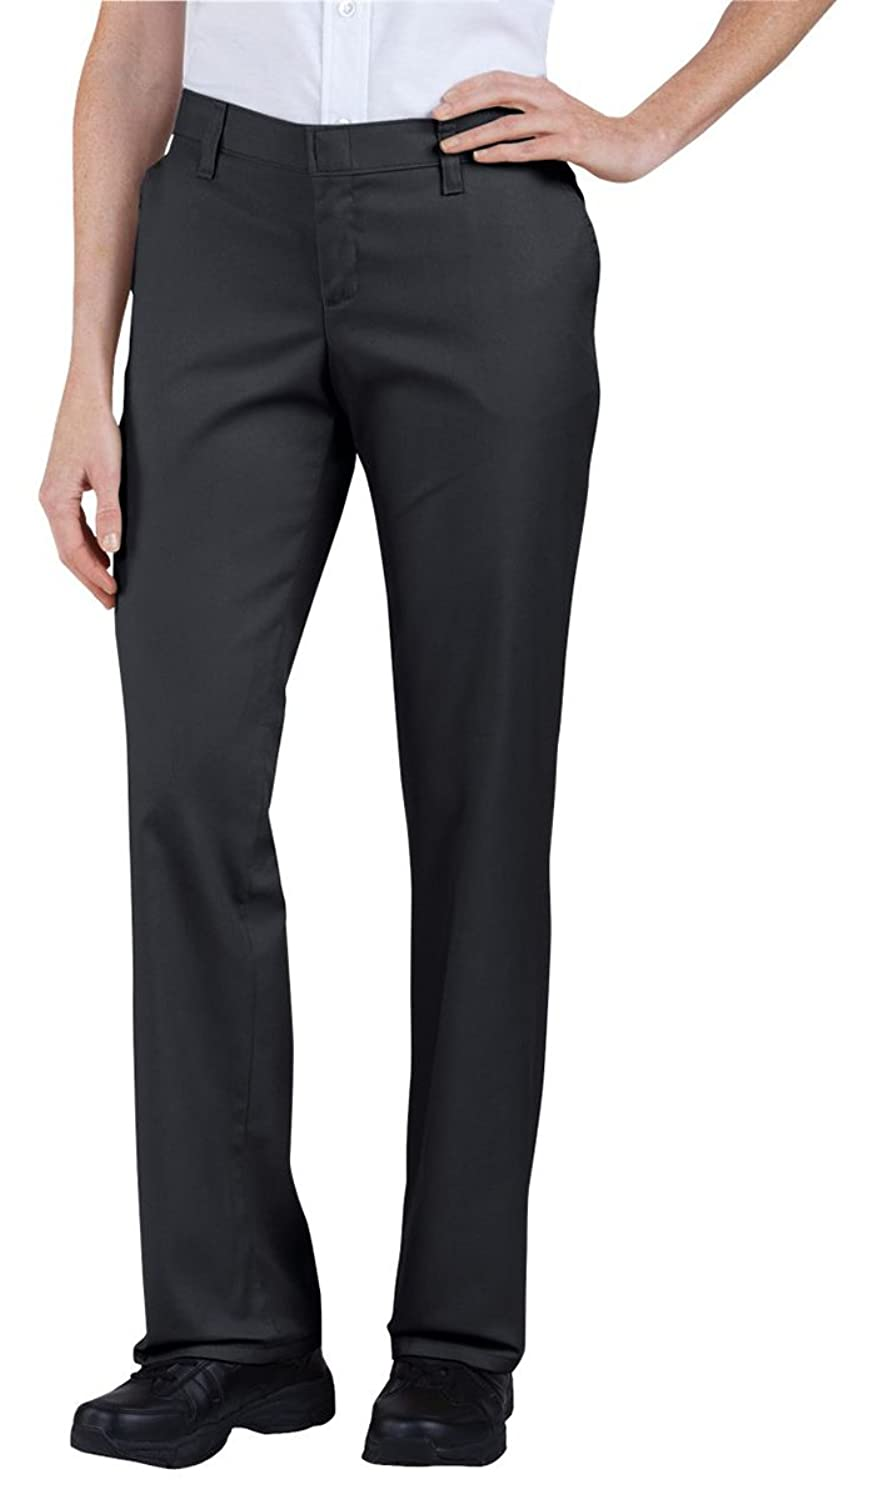 Dickies FP221 Women's Flat Front Pant Dow Charcoal Size 0 Unhemmed